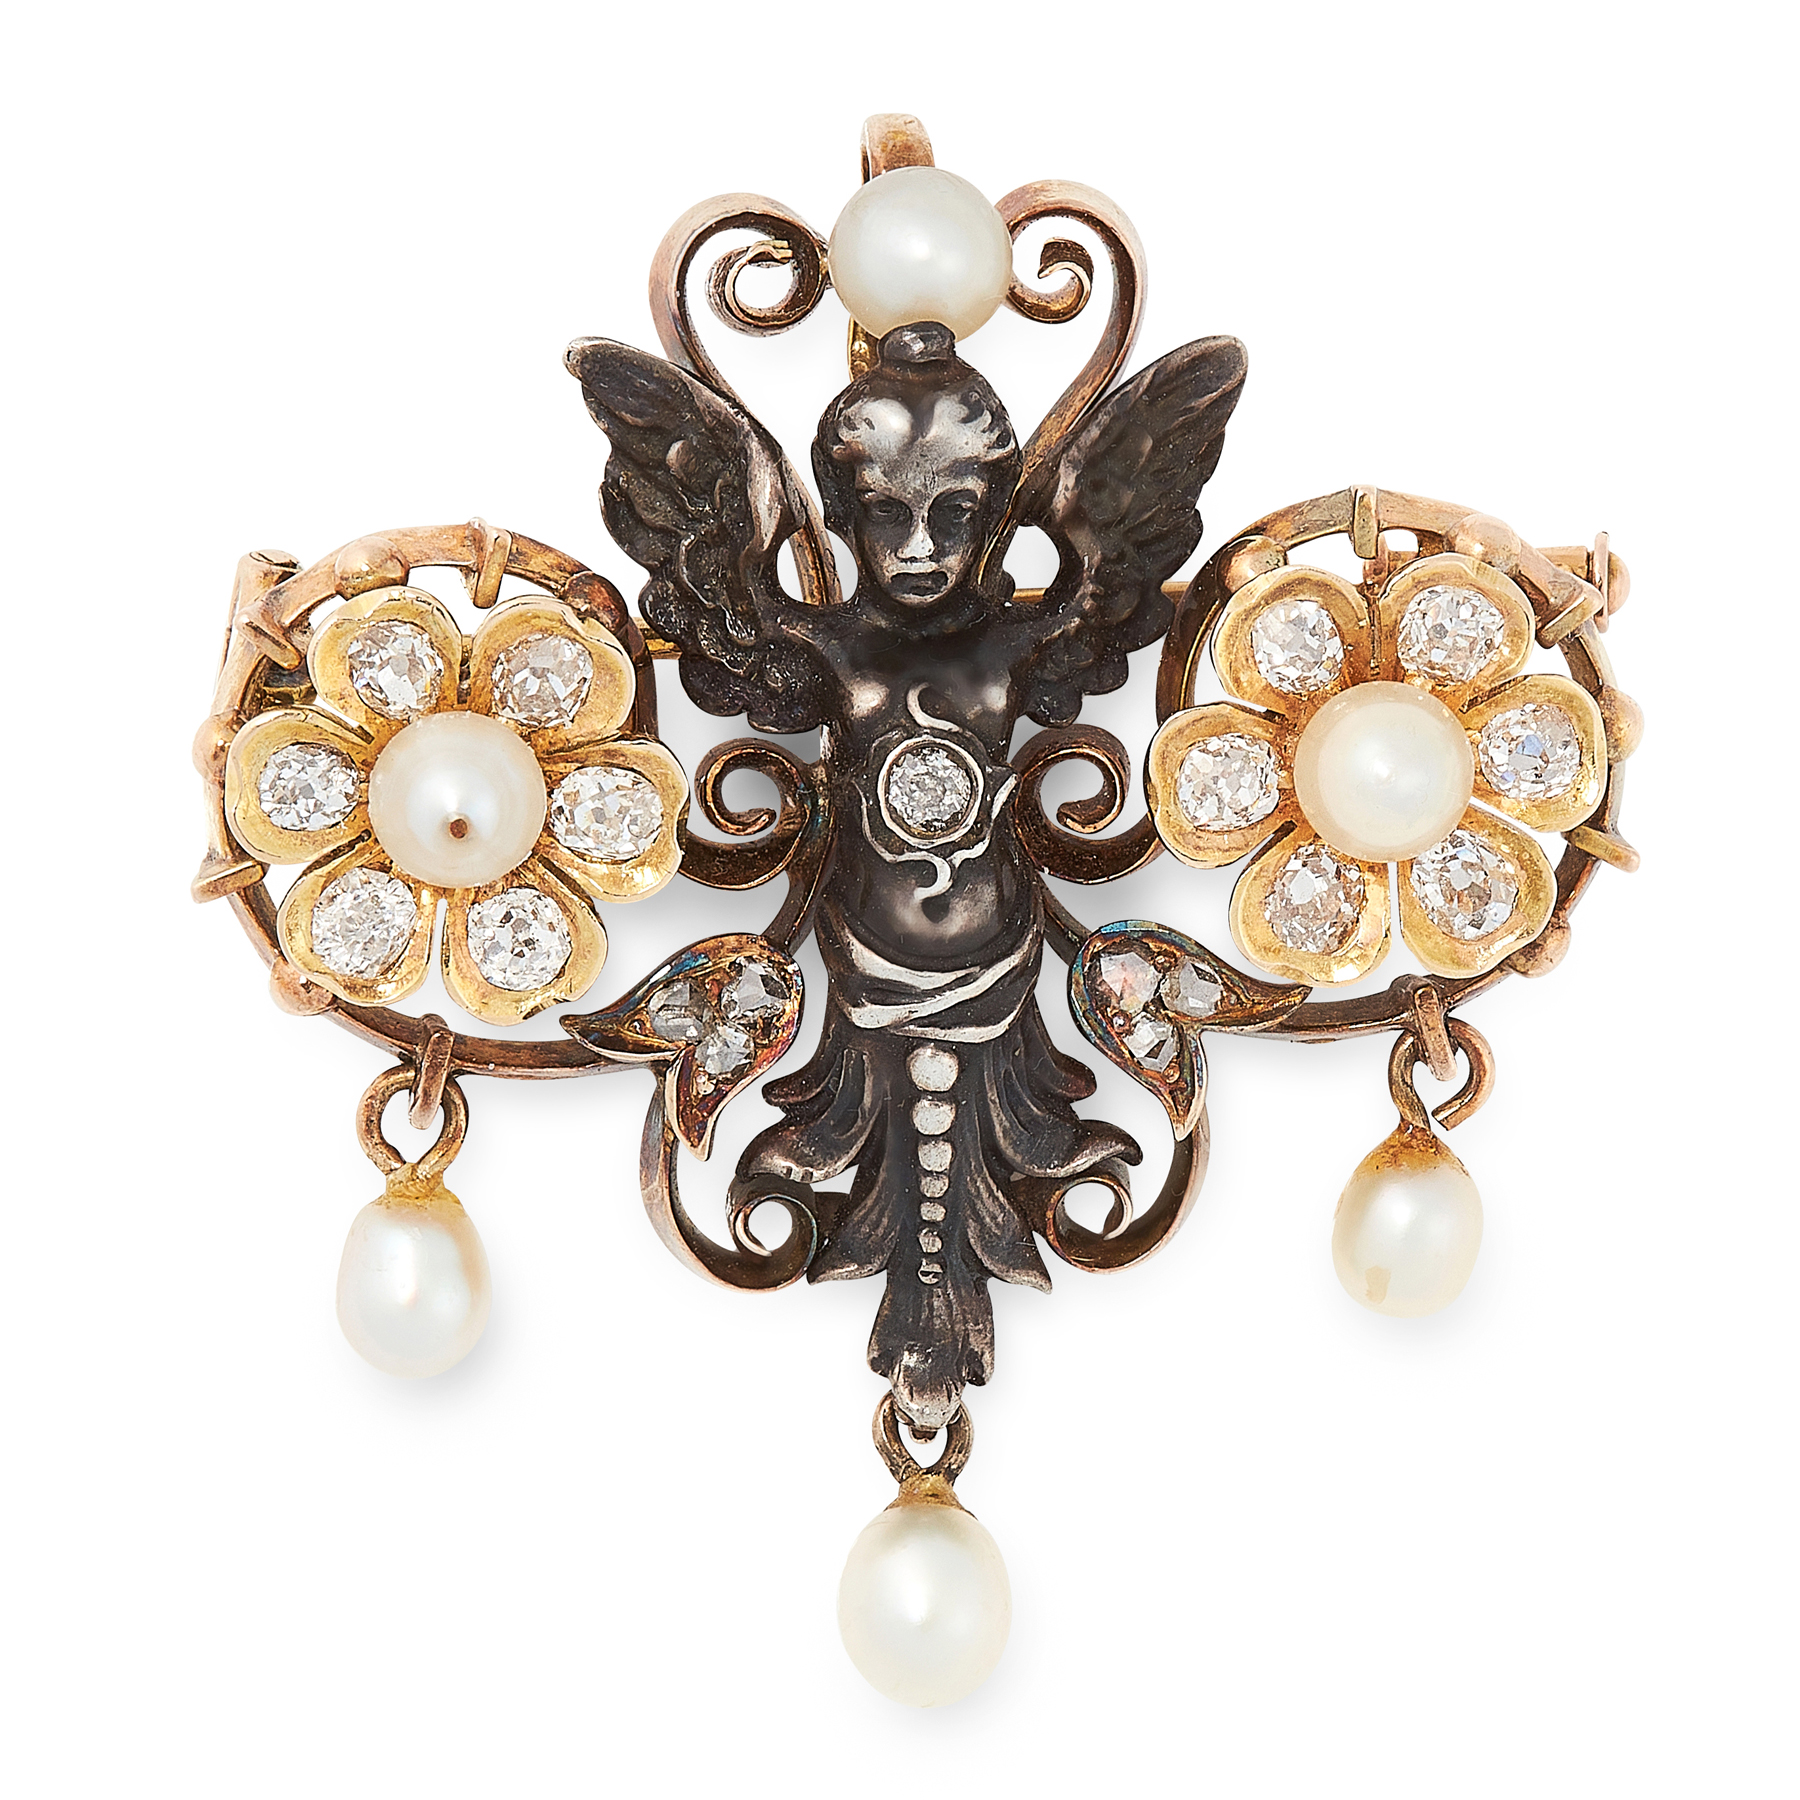 Lot 10 - AN ART NOUVEAU DIAMOND AND PEARL BROOCH in yellow gold and silver, the silver putti set with old and